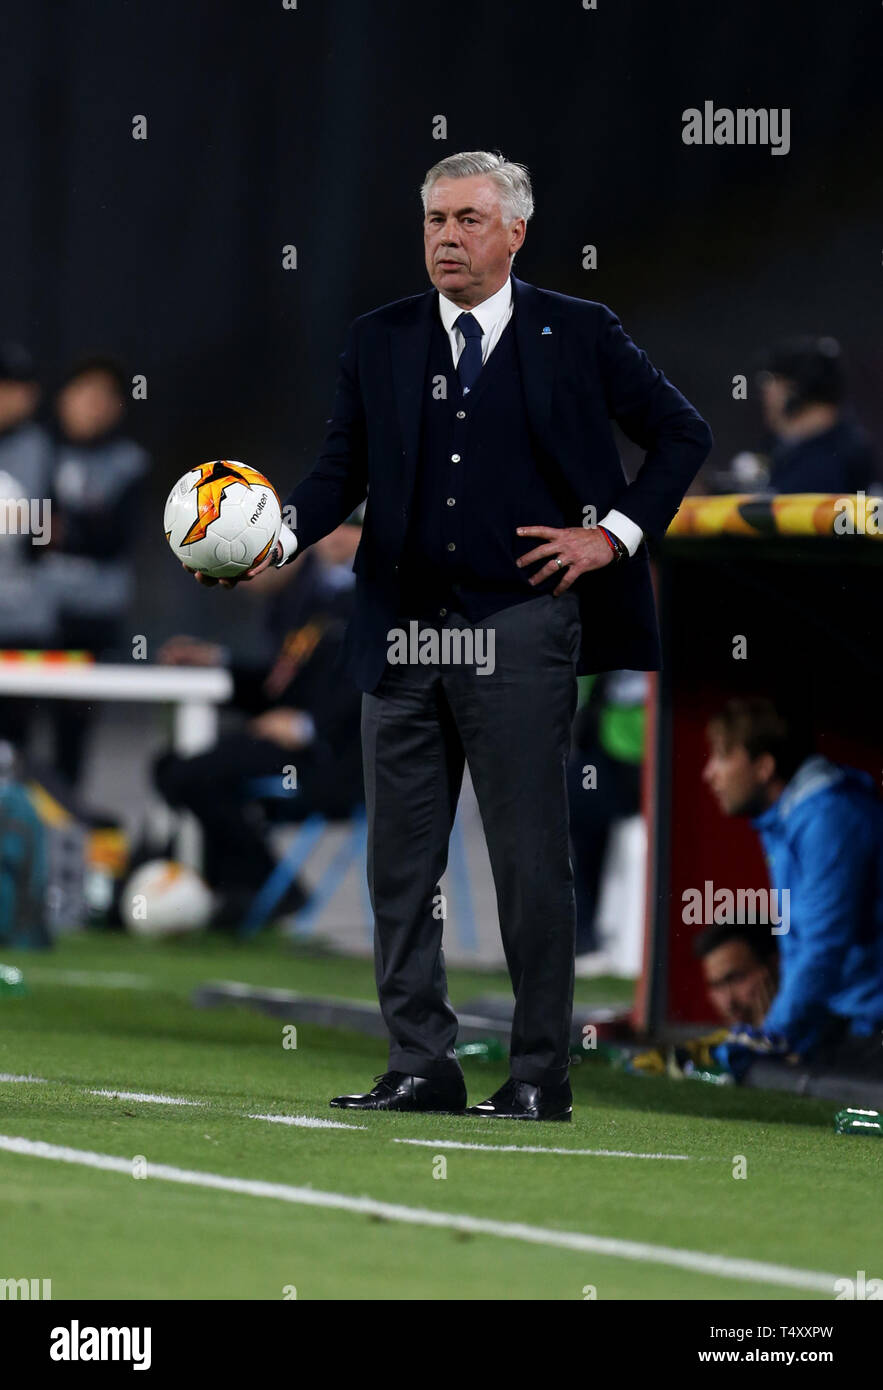 Napoli manager Carlo Ancelotti on the touchline during the UEFA Europa League quarter final second leg match at the San Paolo Stadium, Naples. Stock Photo